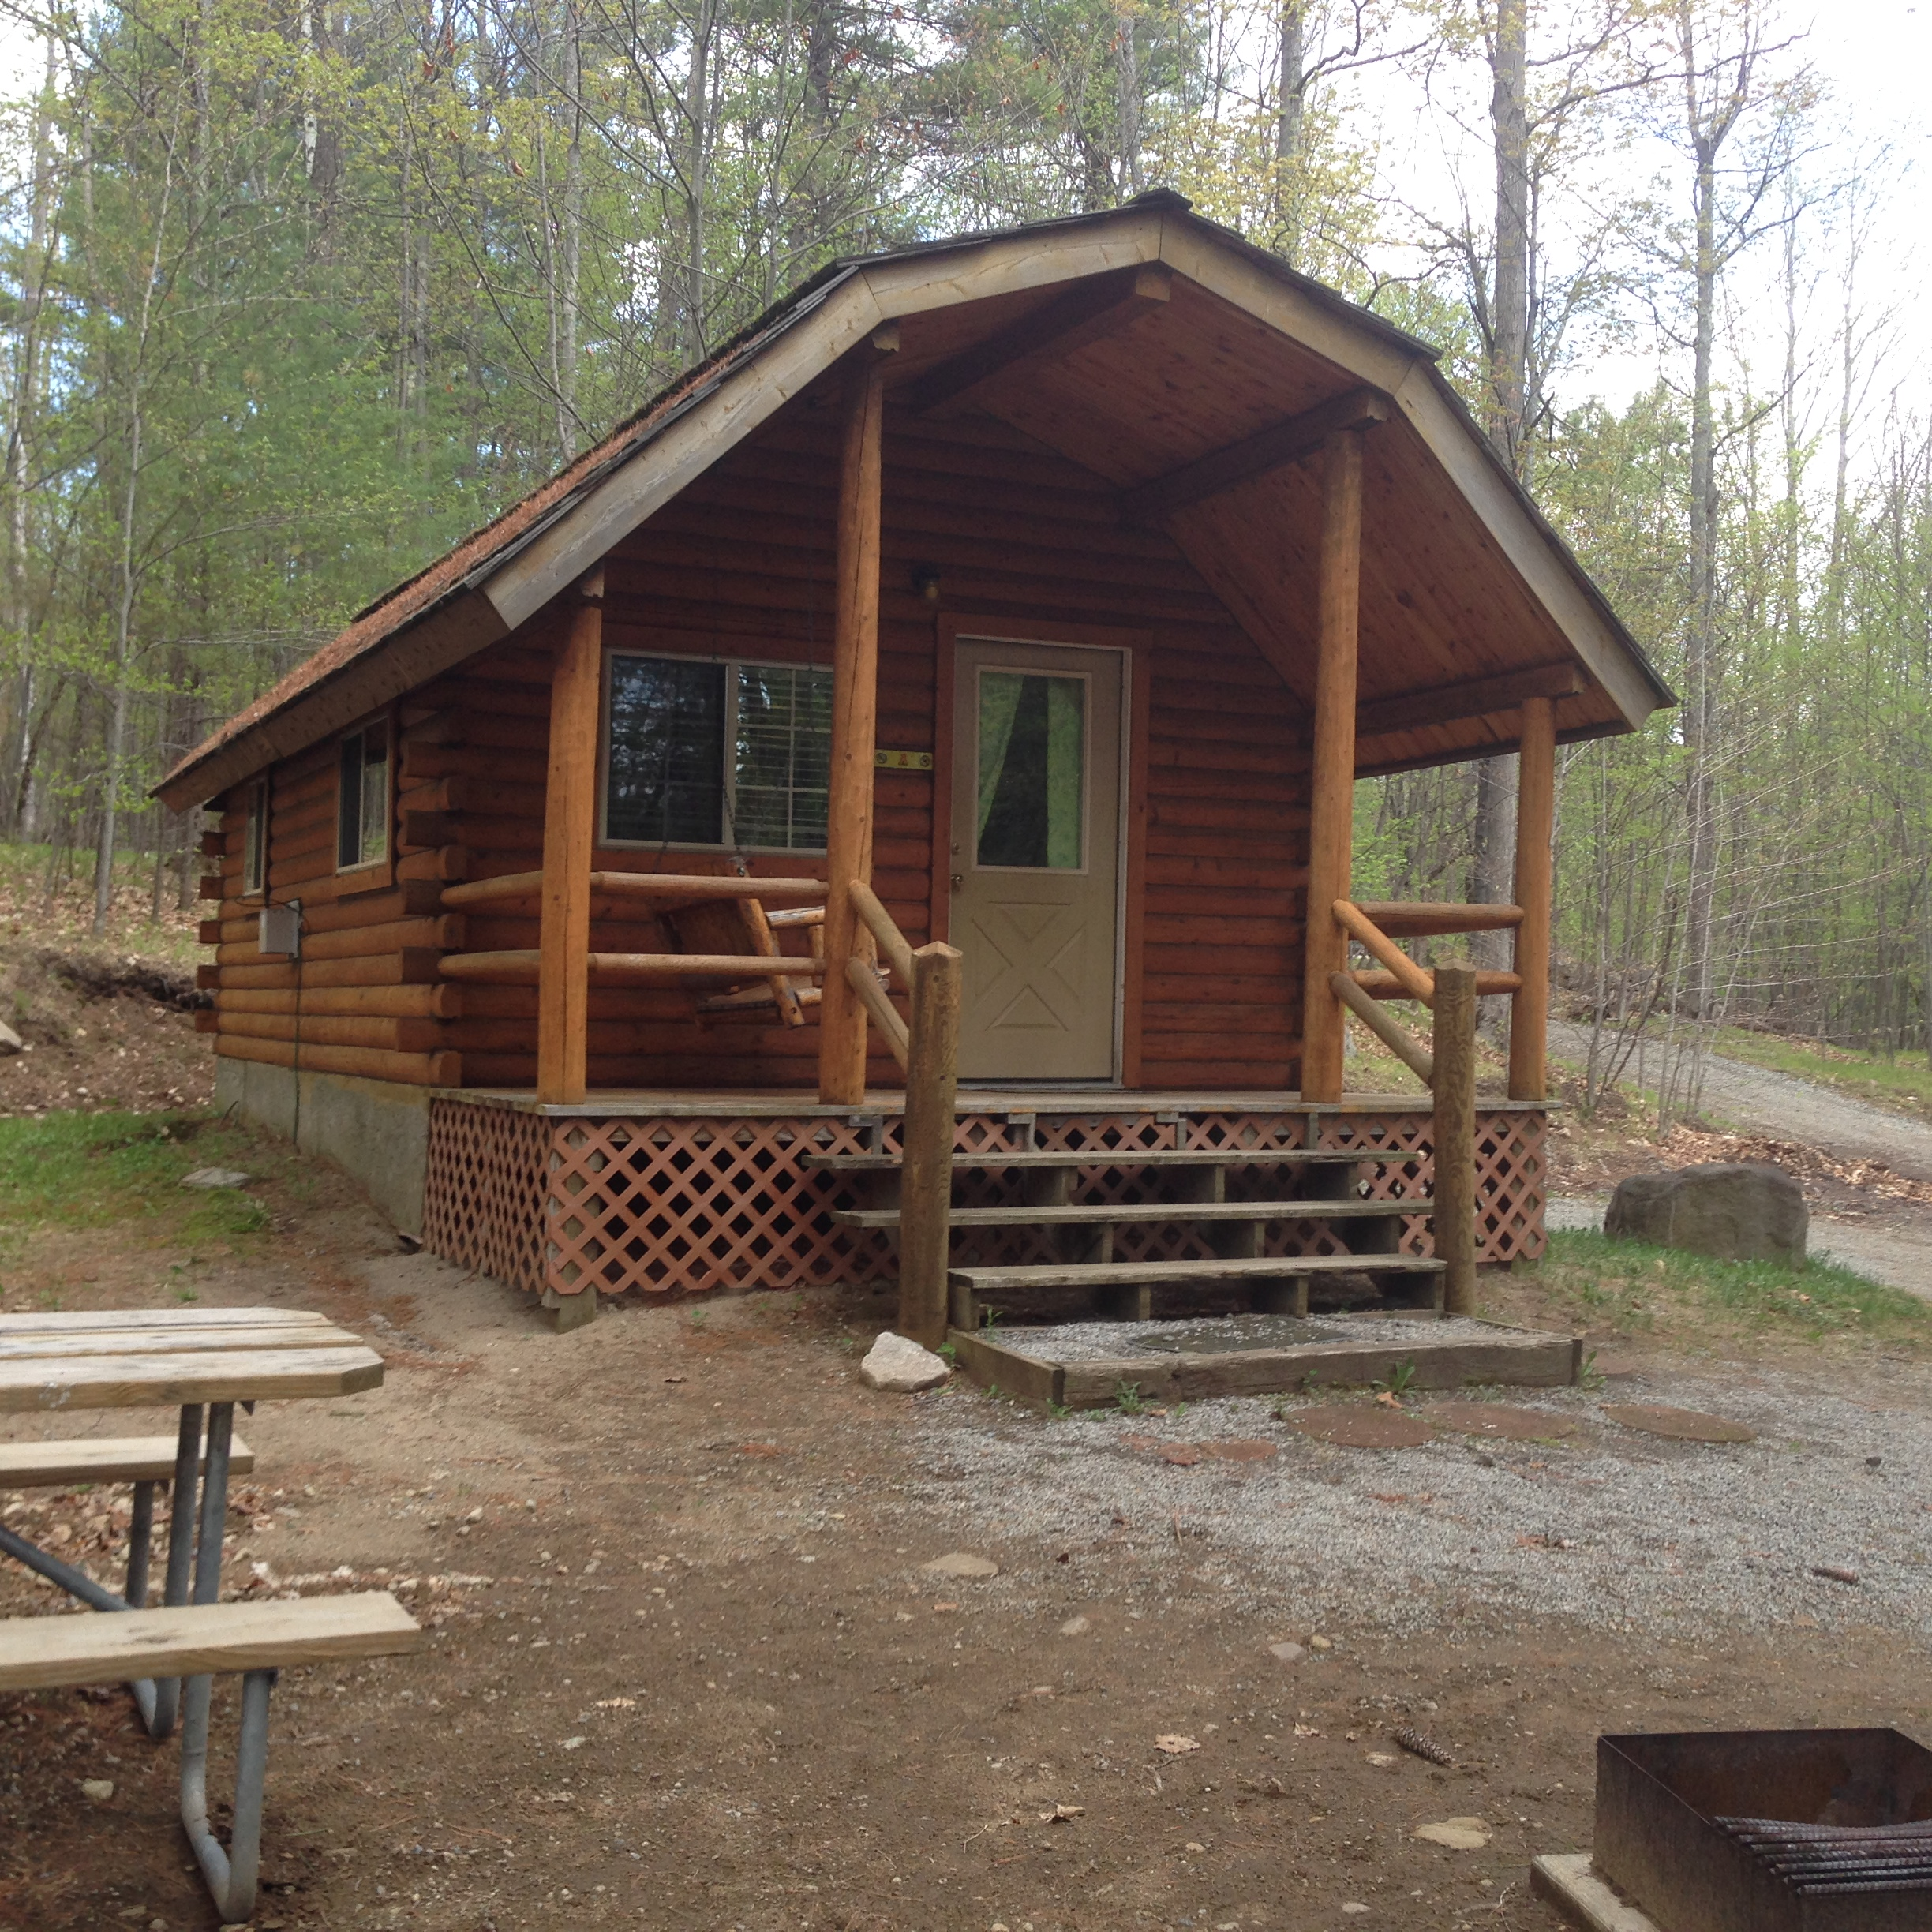 koa deluxe stay new campgrounds cabin york whiteface wilmington camping cozy and a mtn warm lake placid cabins in photos